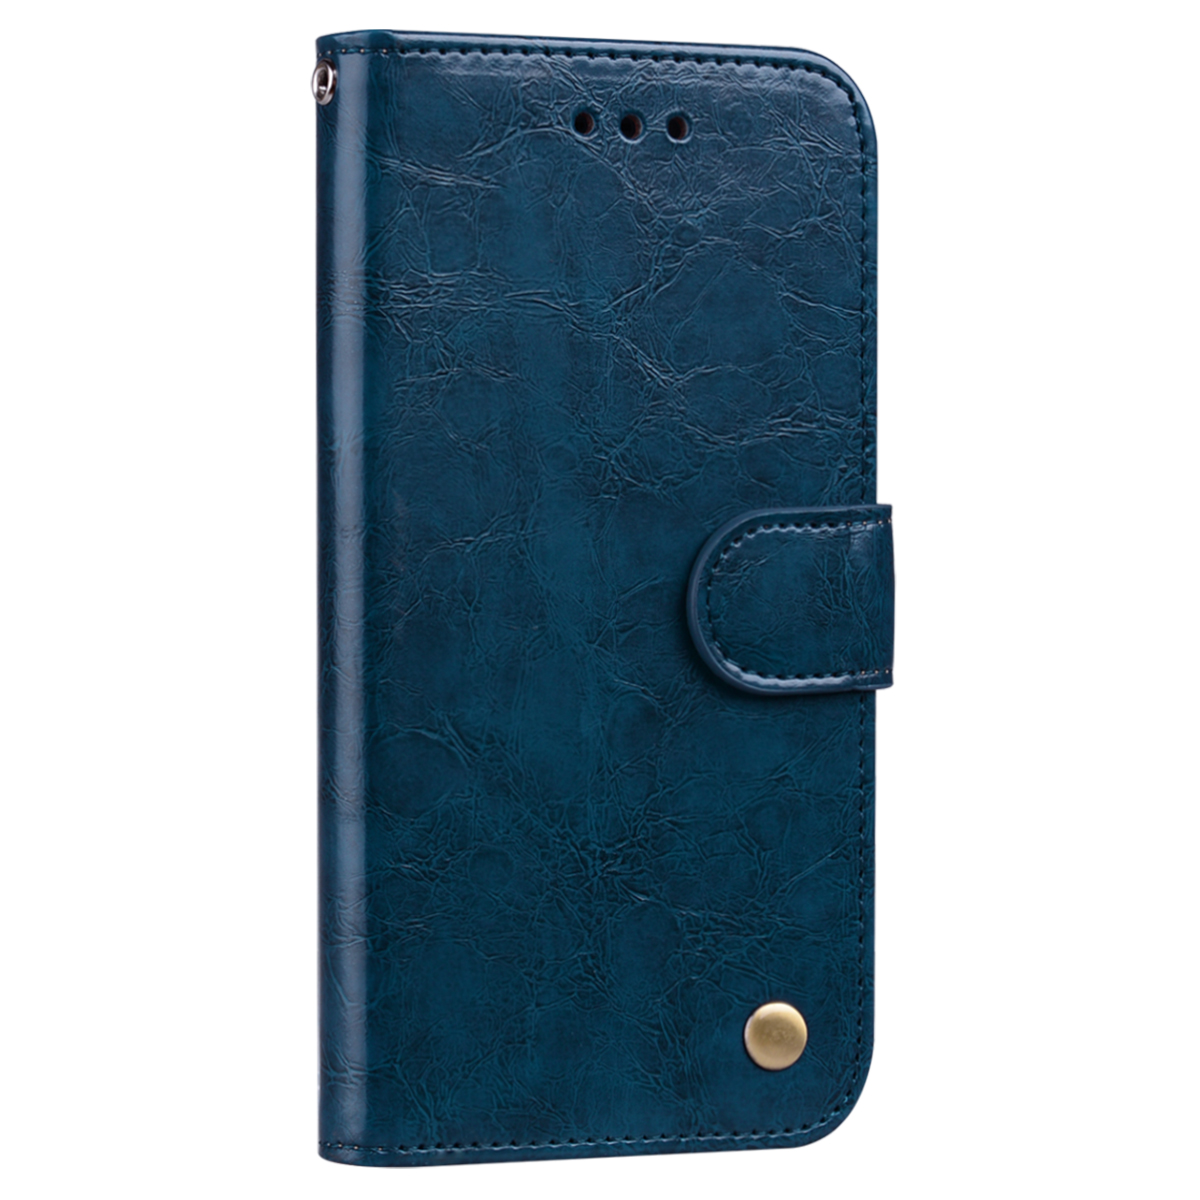 Luxury PU Leather Wallet TPU Soft Silicone Flip Phone Case Cover For Huawei Mate 10Lite Nova2i Smartphone Global Version Coque